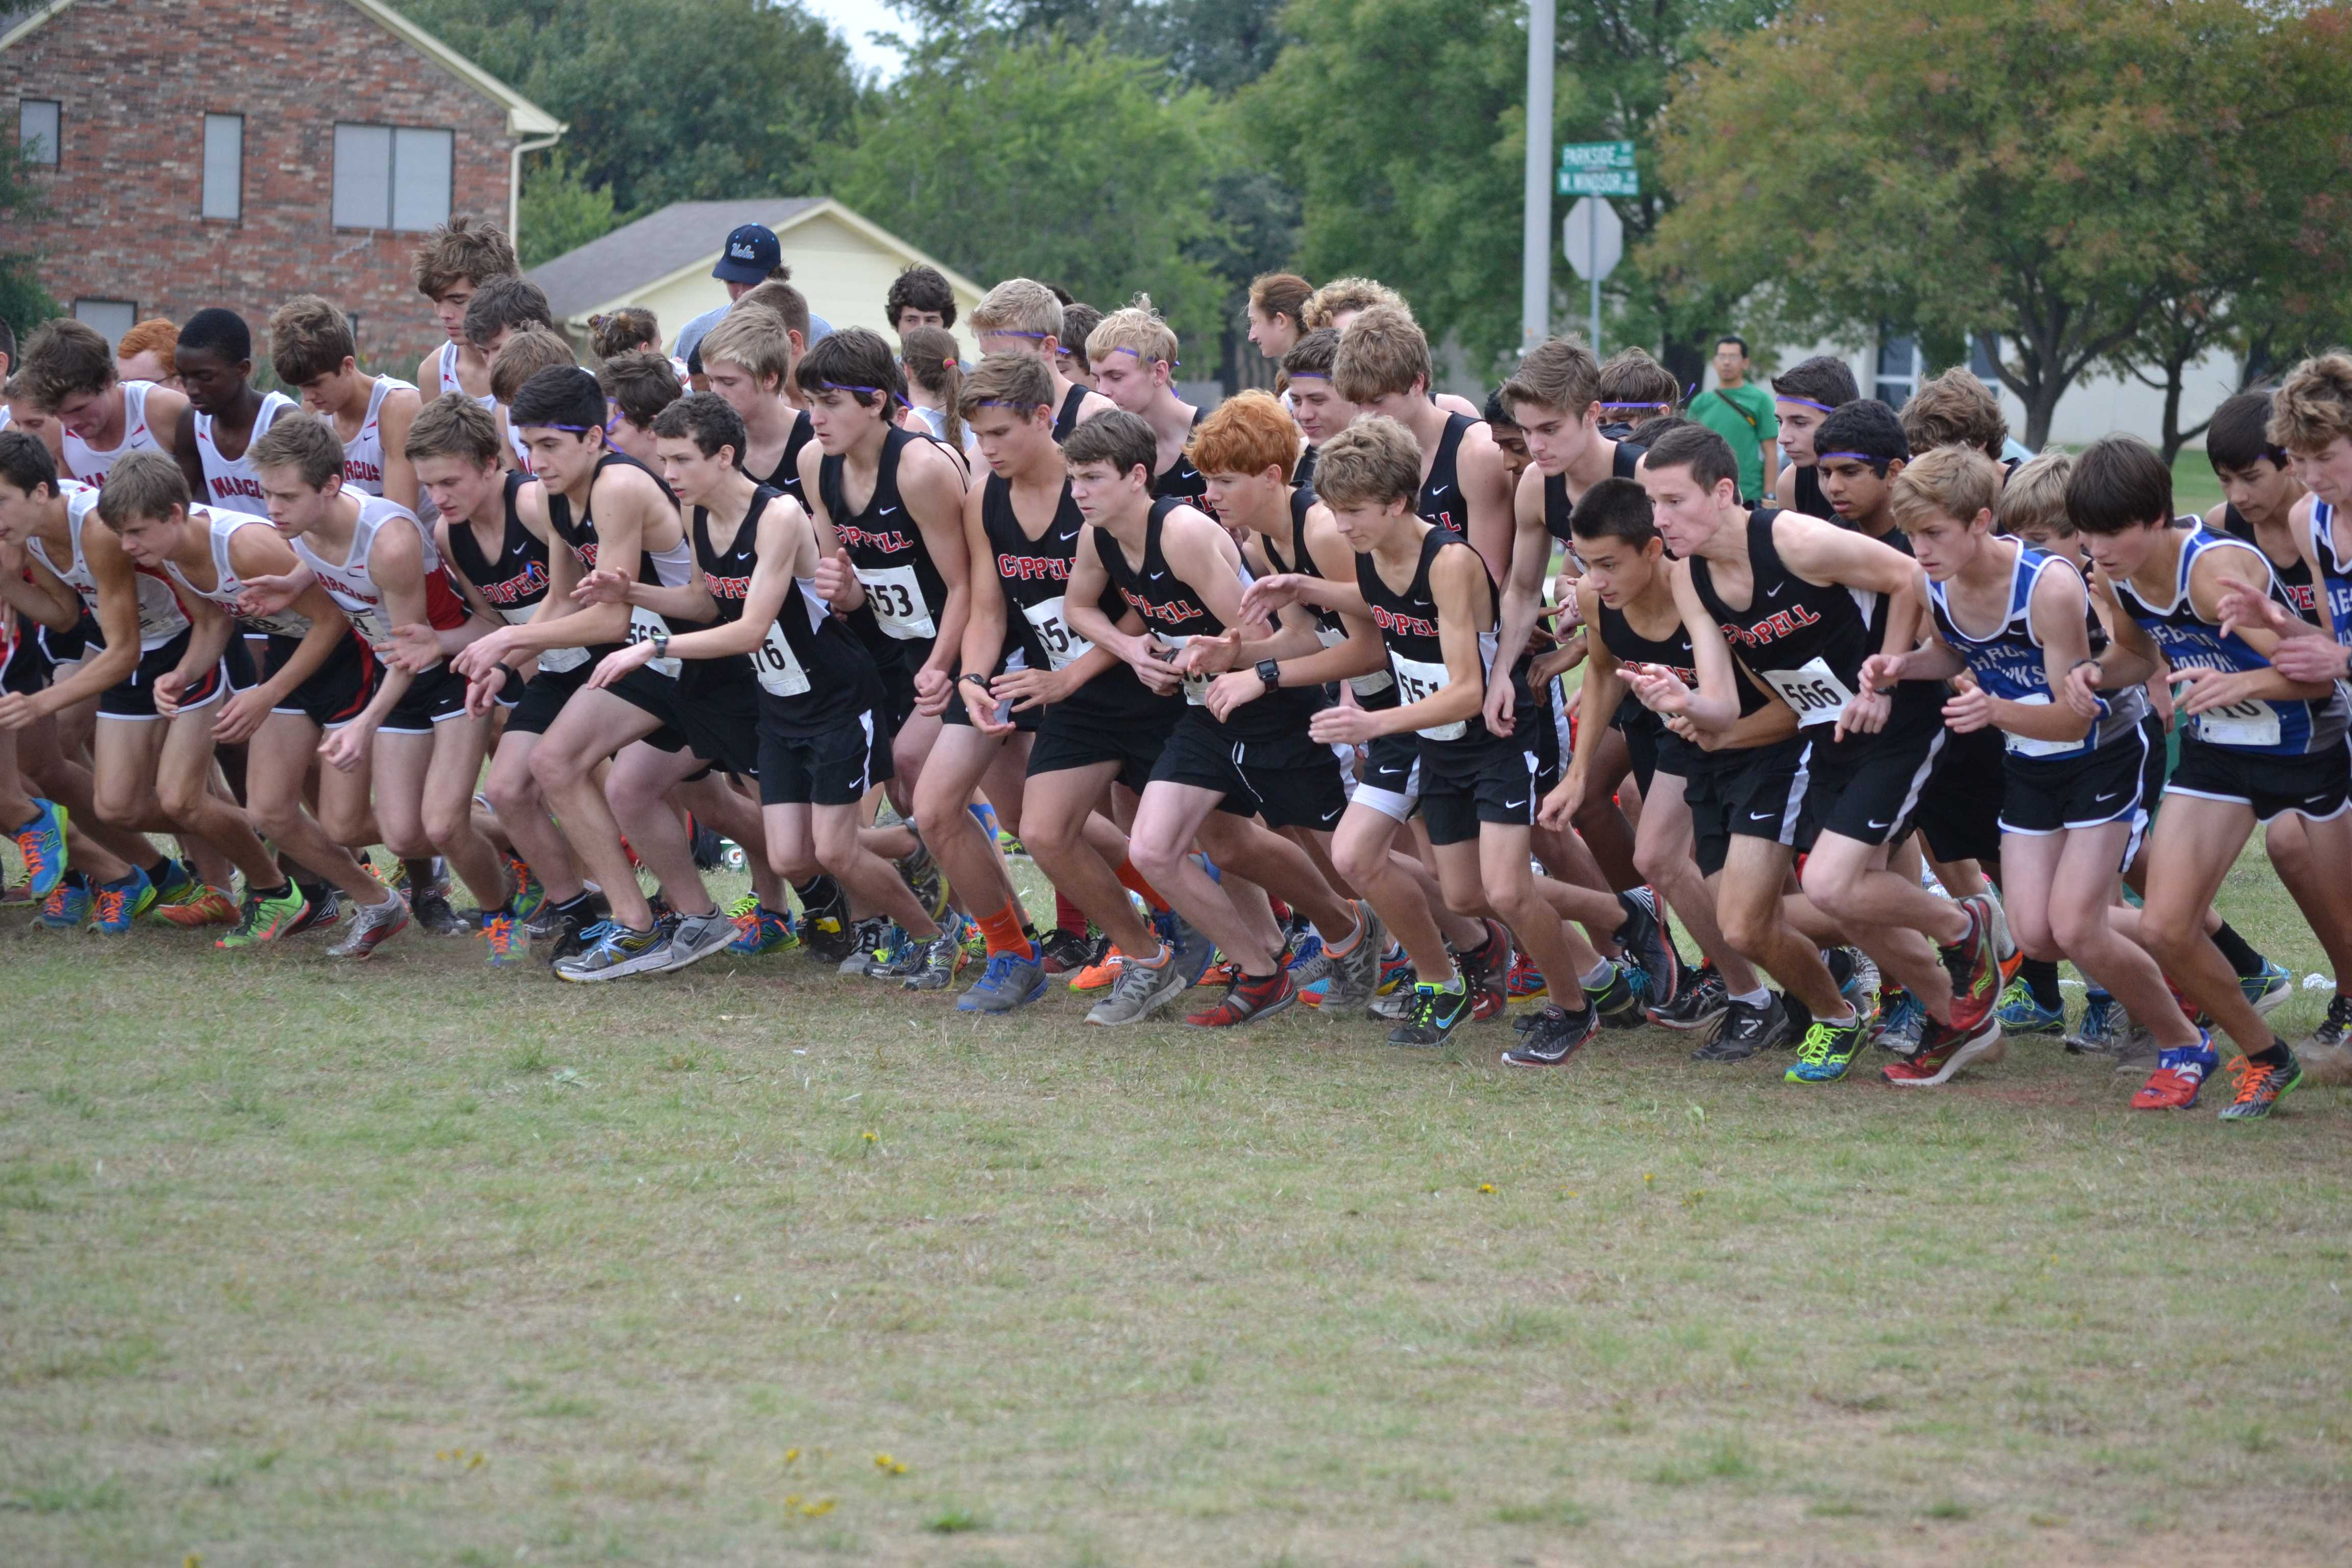 The JV boys went into a tiebreaker for third place with Flower Mound, and senior Chandler Moake's time put them ahead. Photo by Elizabeth Sims